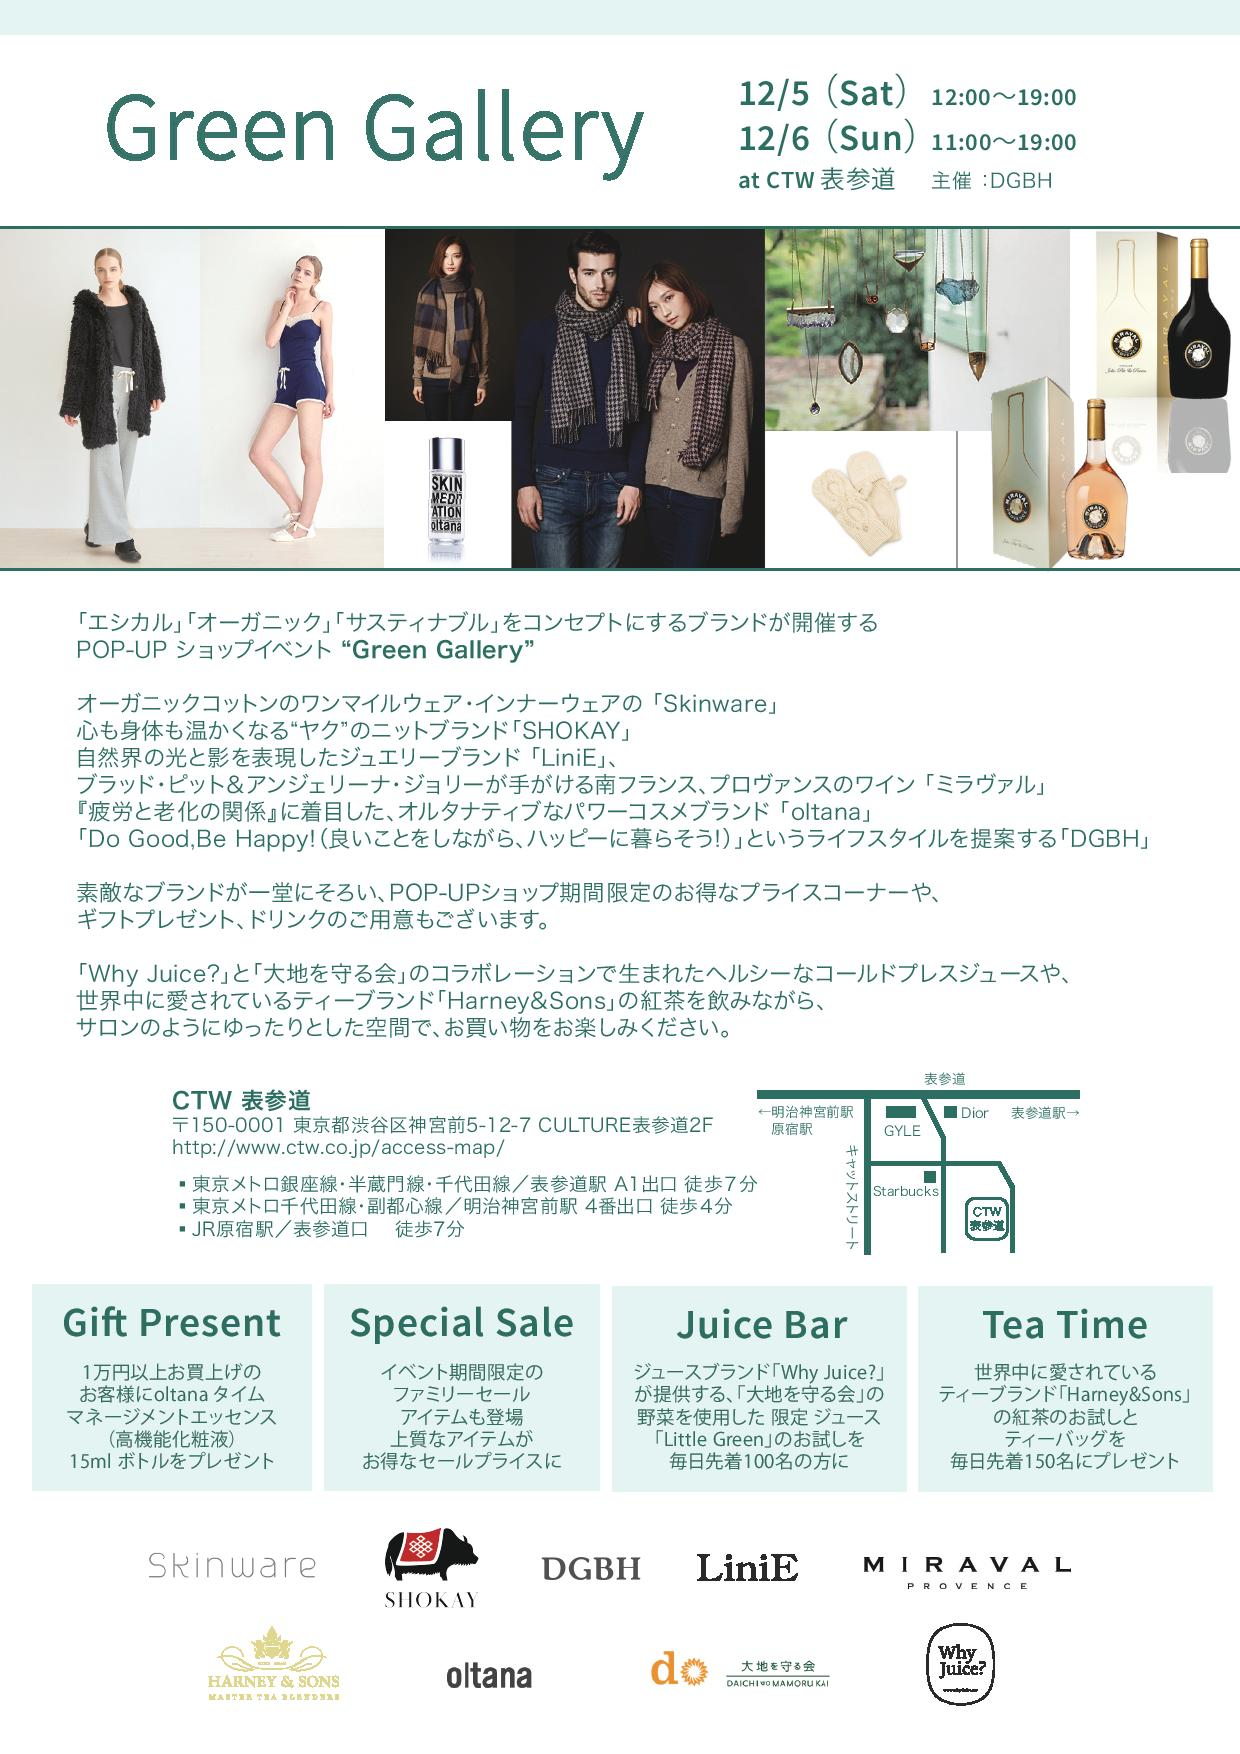 http://dgbh.jp/magazine/img/GG_Release_151130-page-001.jpg